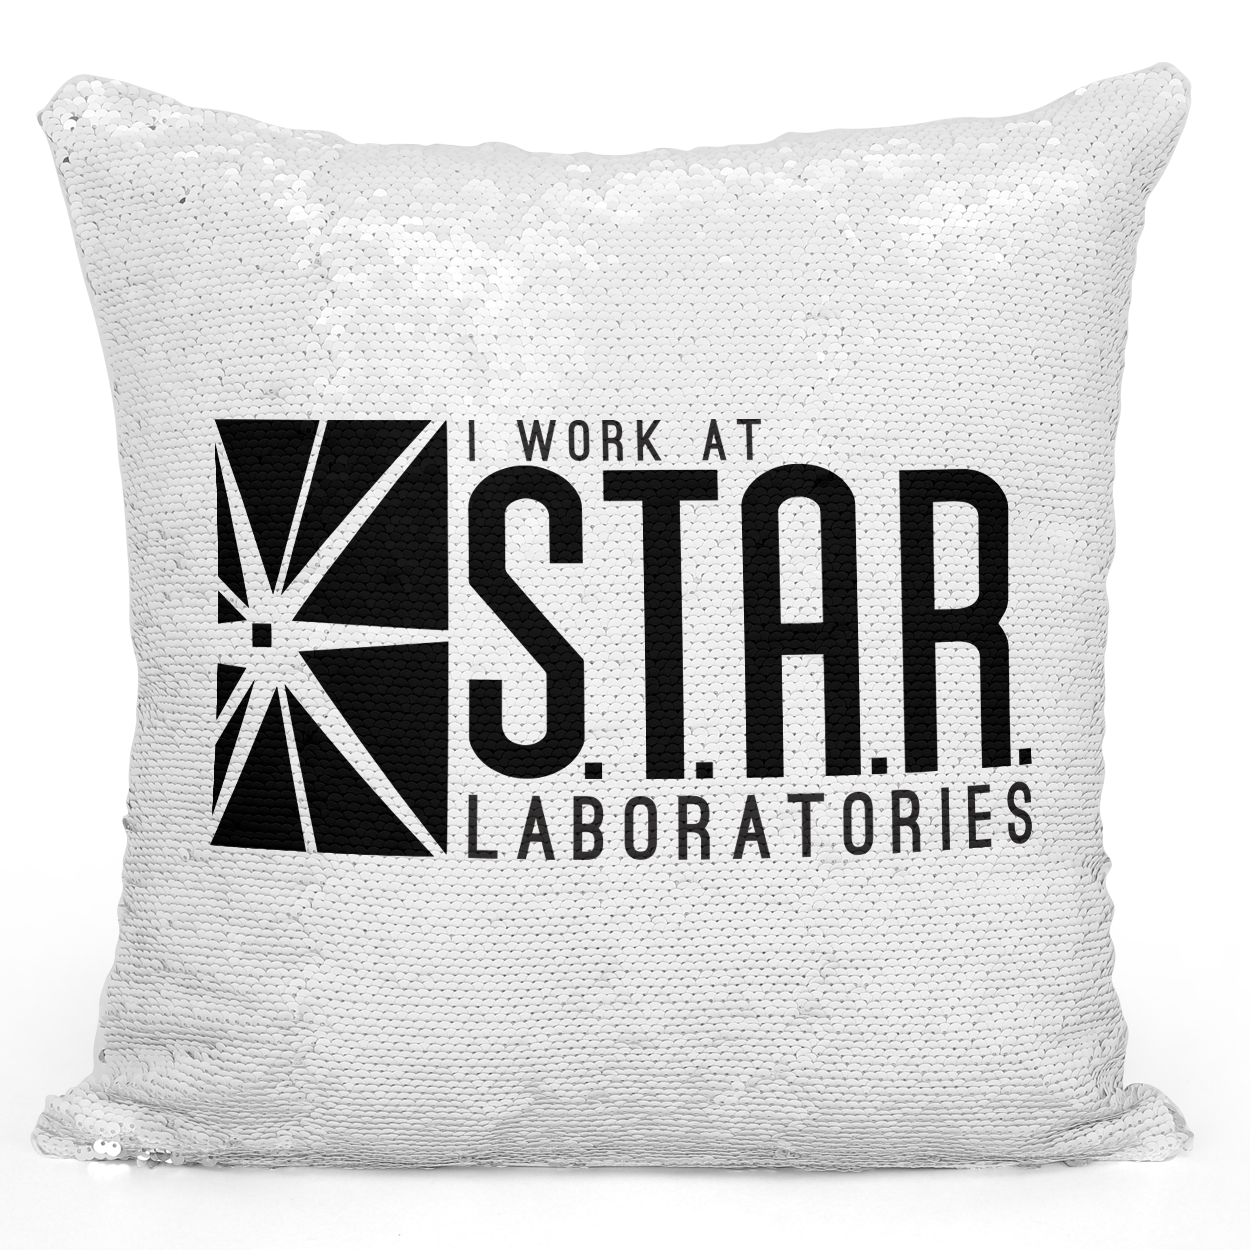 Sequin Pillow Magic Mermaid Throw Pillow i Work At Star Laboratories Pillow - Bright White Polyester 16 x 16 inch Square Unique Home Pillow Loud Universe